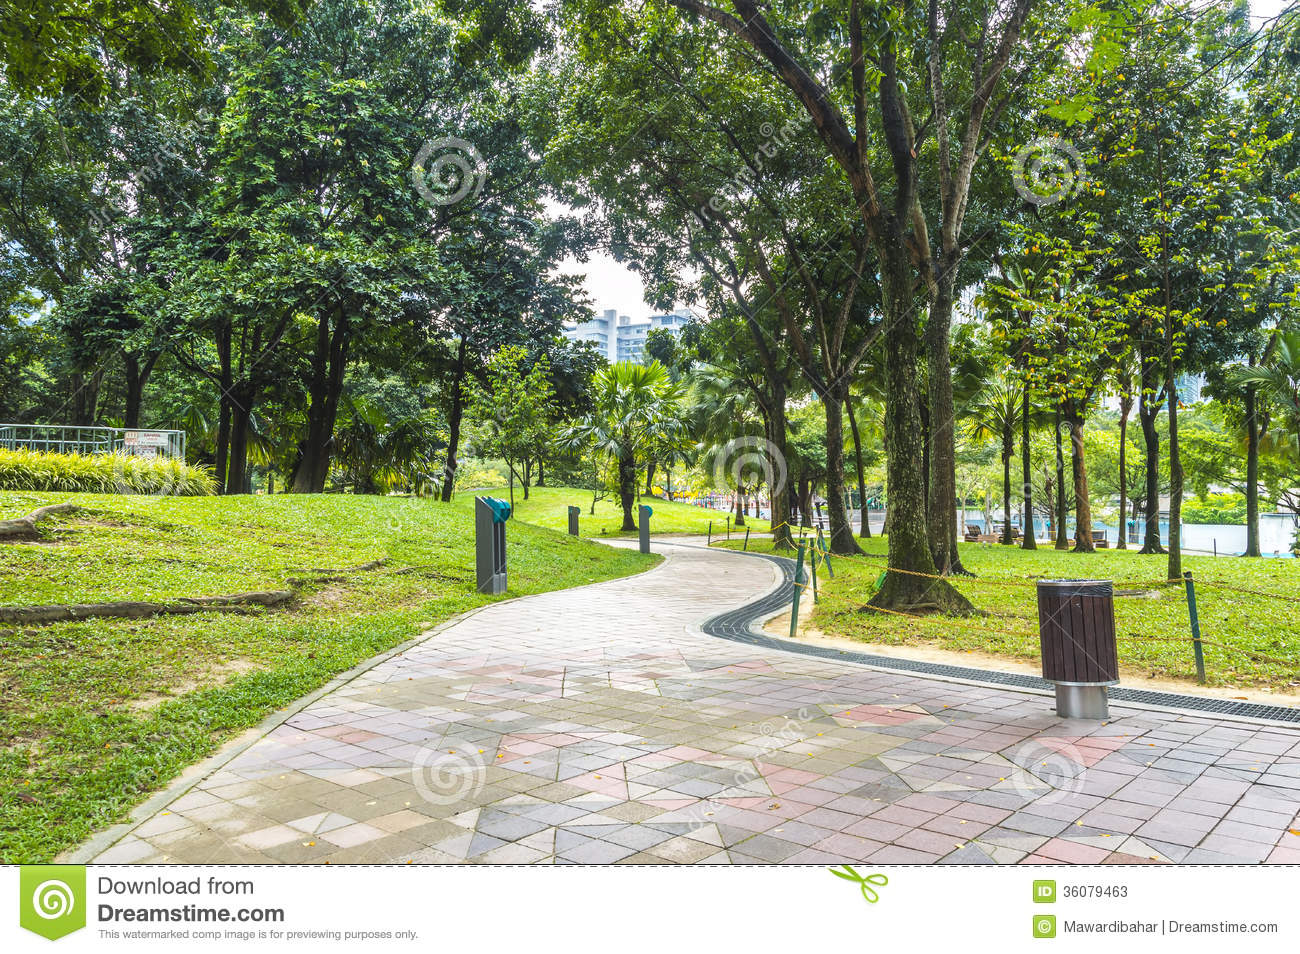 Jogging Track Stock Photos - Image: 36079463